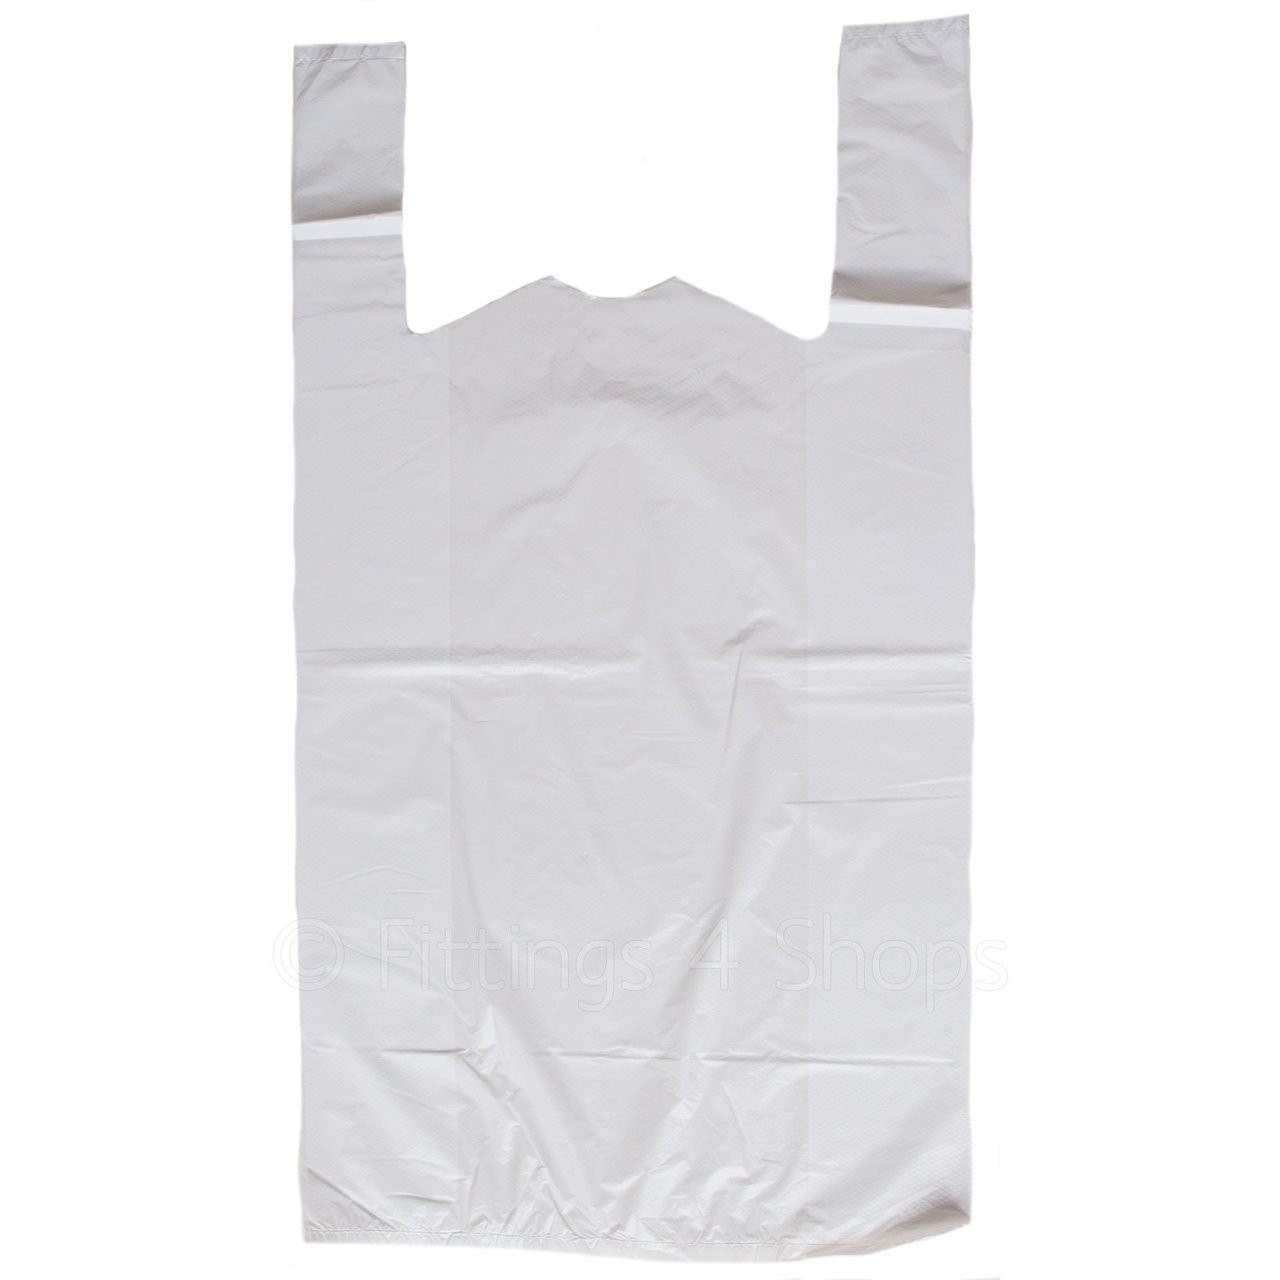 White Plastic Carrier Bags Large Pack Size 1000